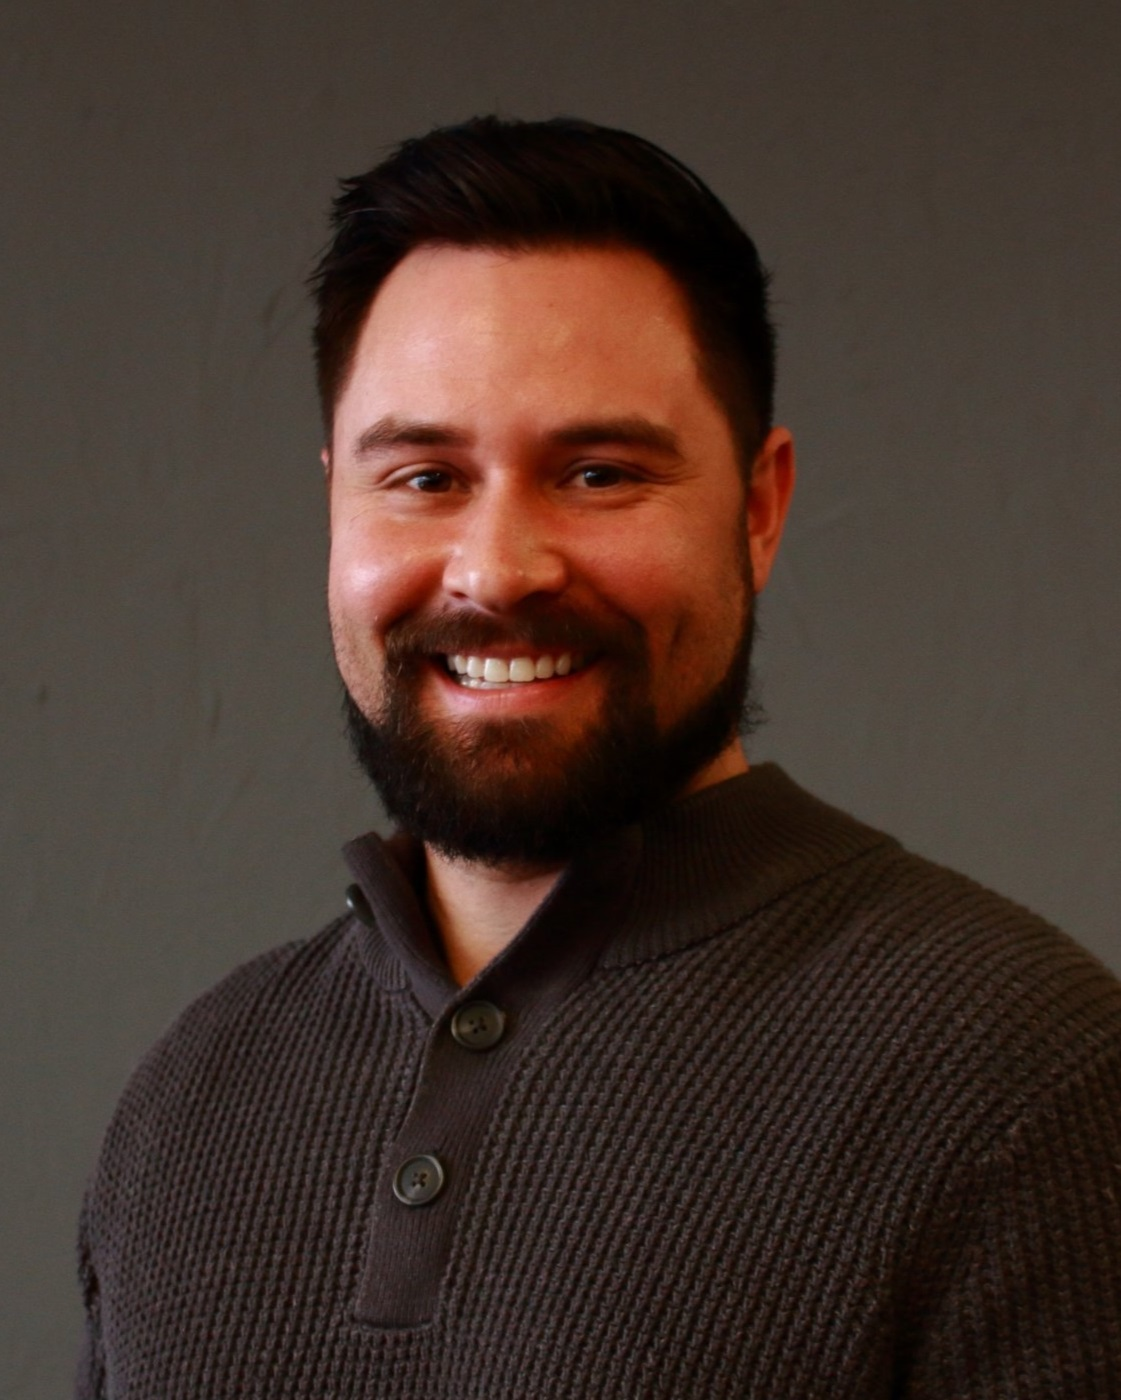 Matt Harkey (Associate Pastor | Elder) - Matt has been amazed at the grace of God since the age of 18, when the Lord granted him repentance from sin and faith in Jesus Christ. With a passion in his heart to teach God's word, Matt graduated from the College of Biblical Studies in 2008, where he earned a B.S. in Christian Leadership. Following graduation, Matt went to Dallas Theological Seminary where he earned a Th.M. in Expository Preaching. Matt is the associate pastor at Jenks Bible Church. His joyful duty is to shepherds young adults, coordinate worship services, and support his lead pastor in the work of the ministry. Matt is married to his lovely wife, Brachele, and they have three beautiful kids.